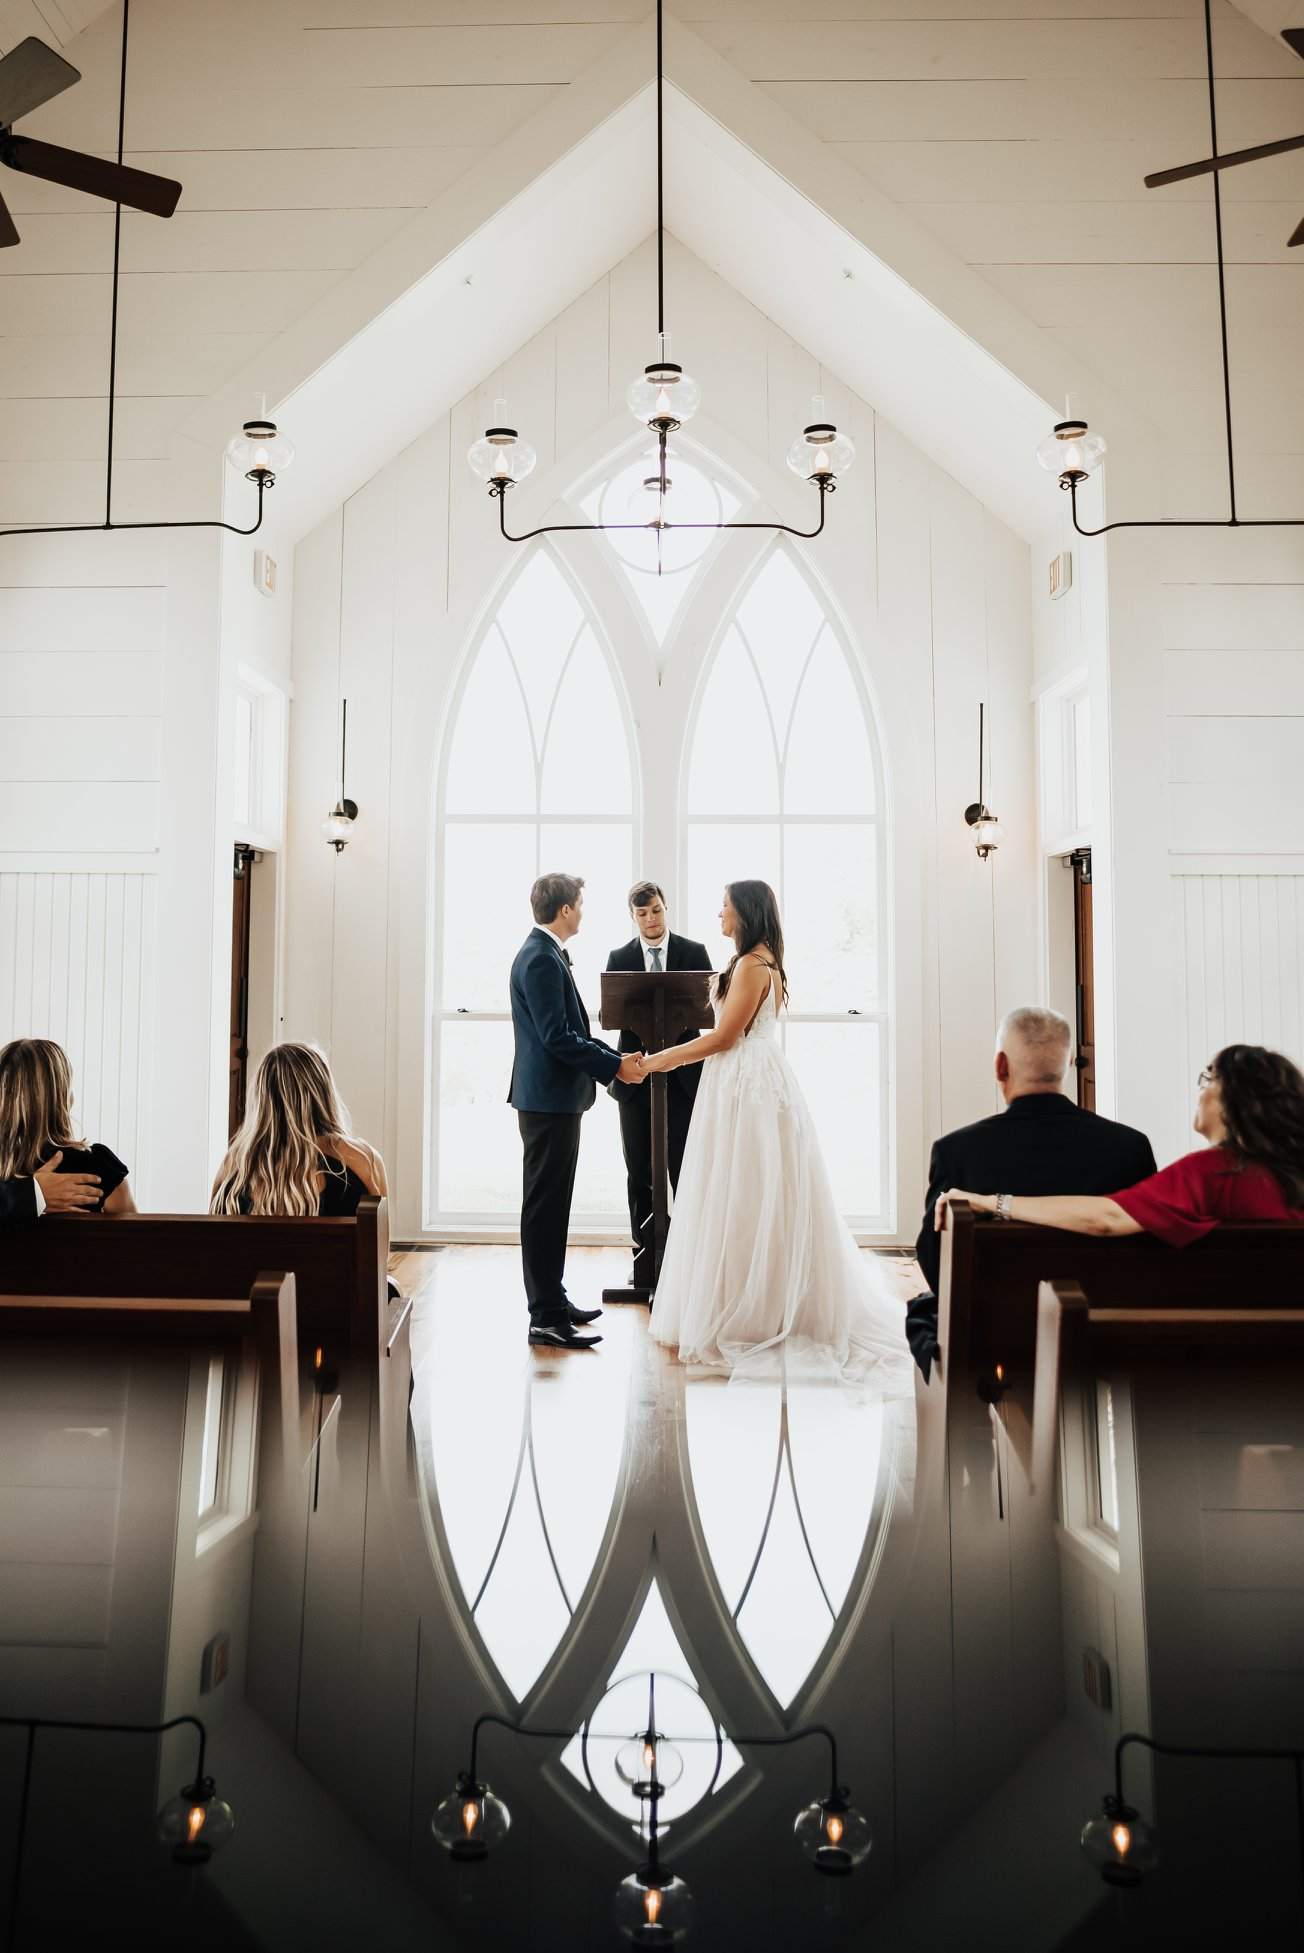 a wedding ceremony taking place in a chapel with a low number of guests